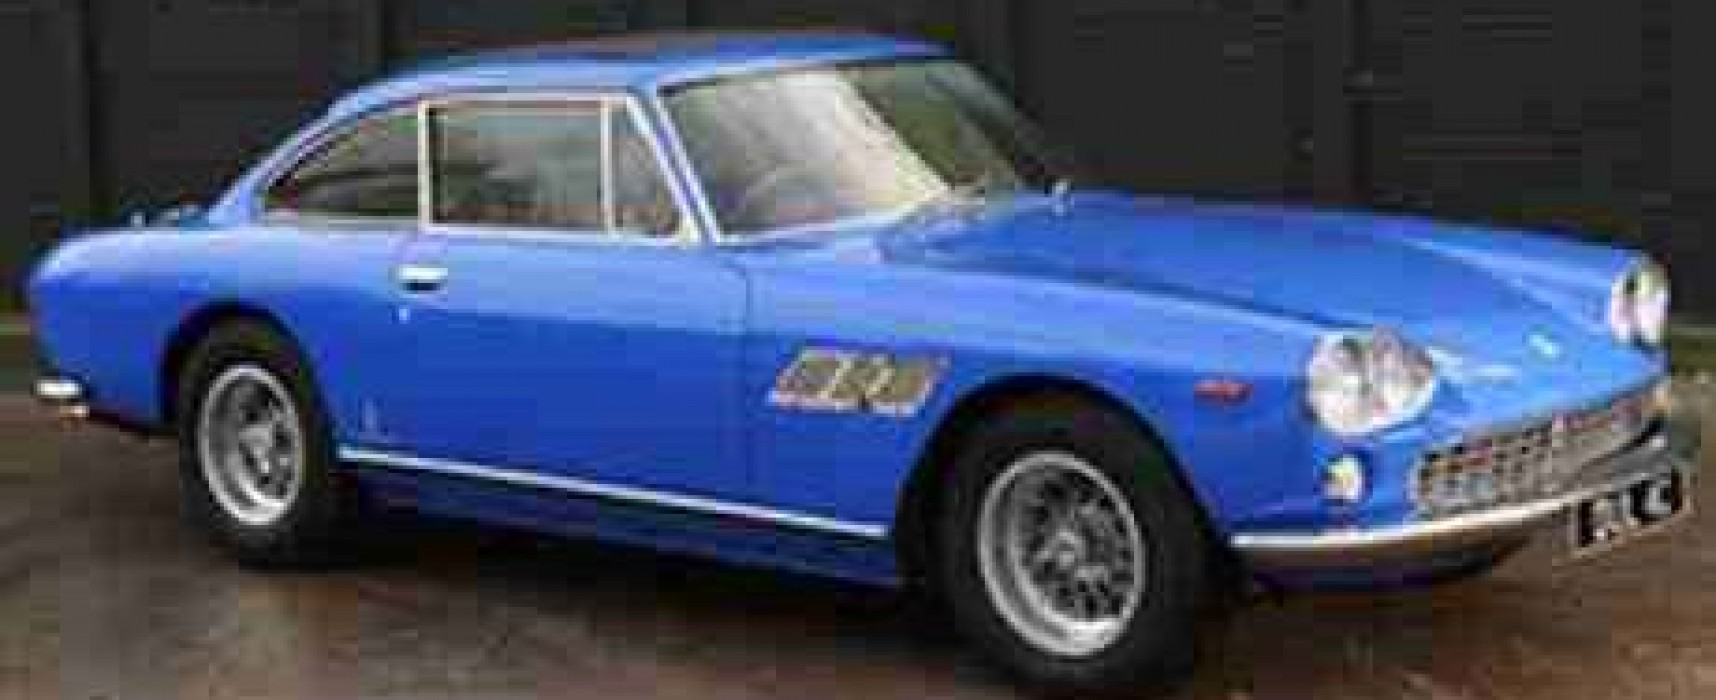 John Lennon's Ferrari to go under the hammer